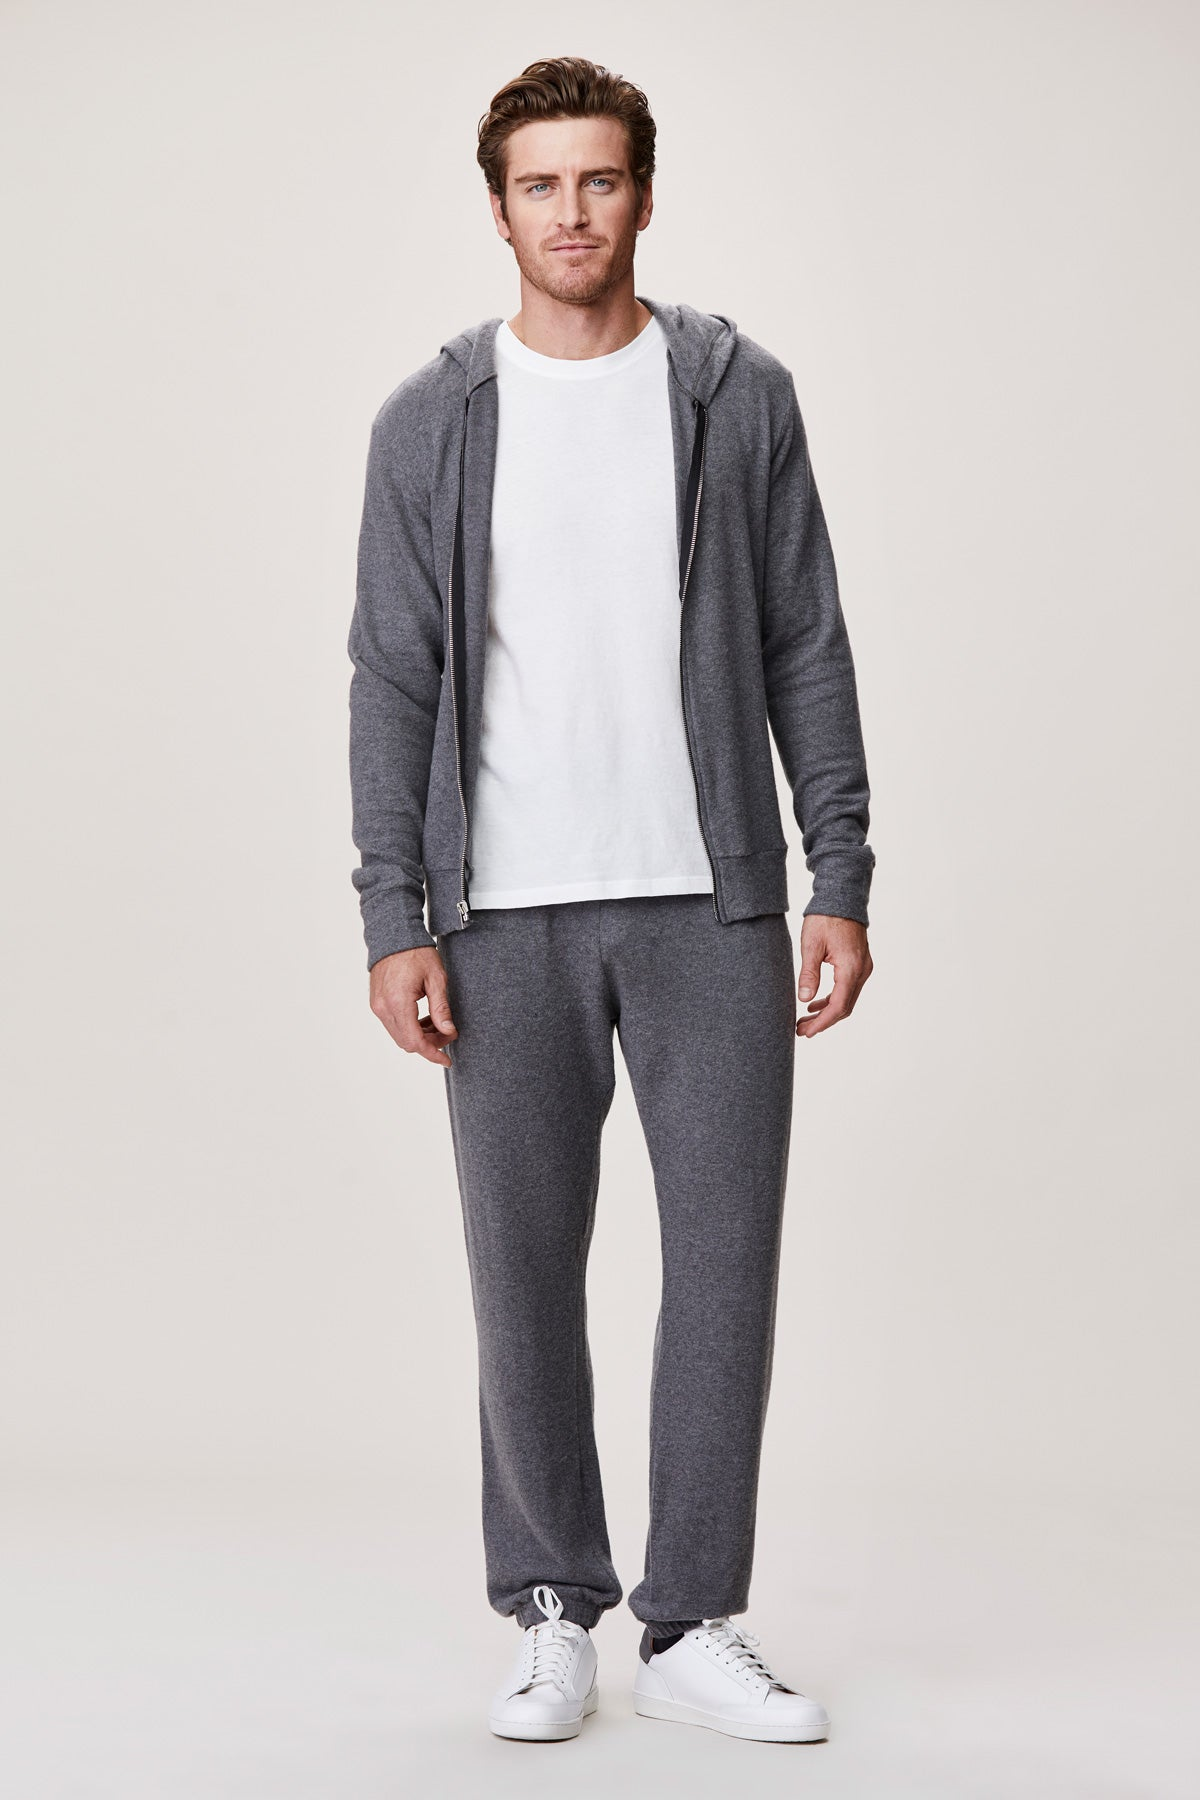 LNA Men's Grey Brushed Hacci Sweatpant